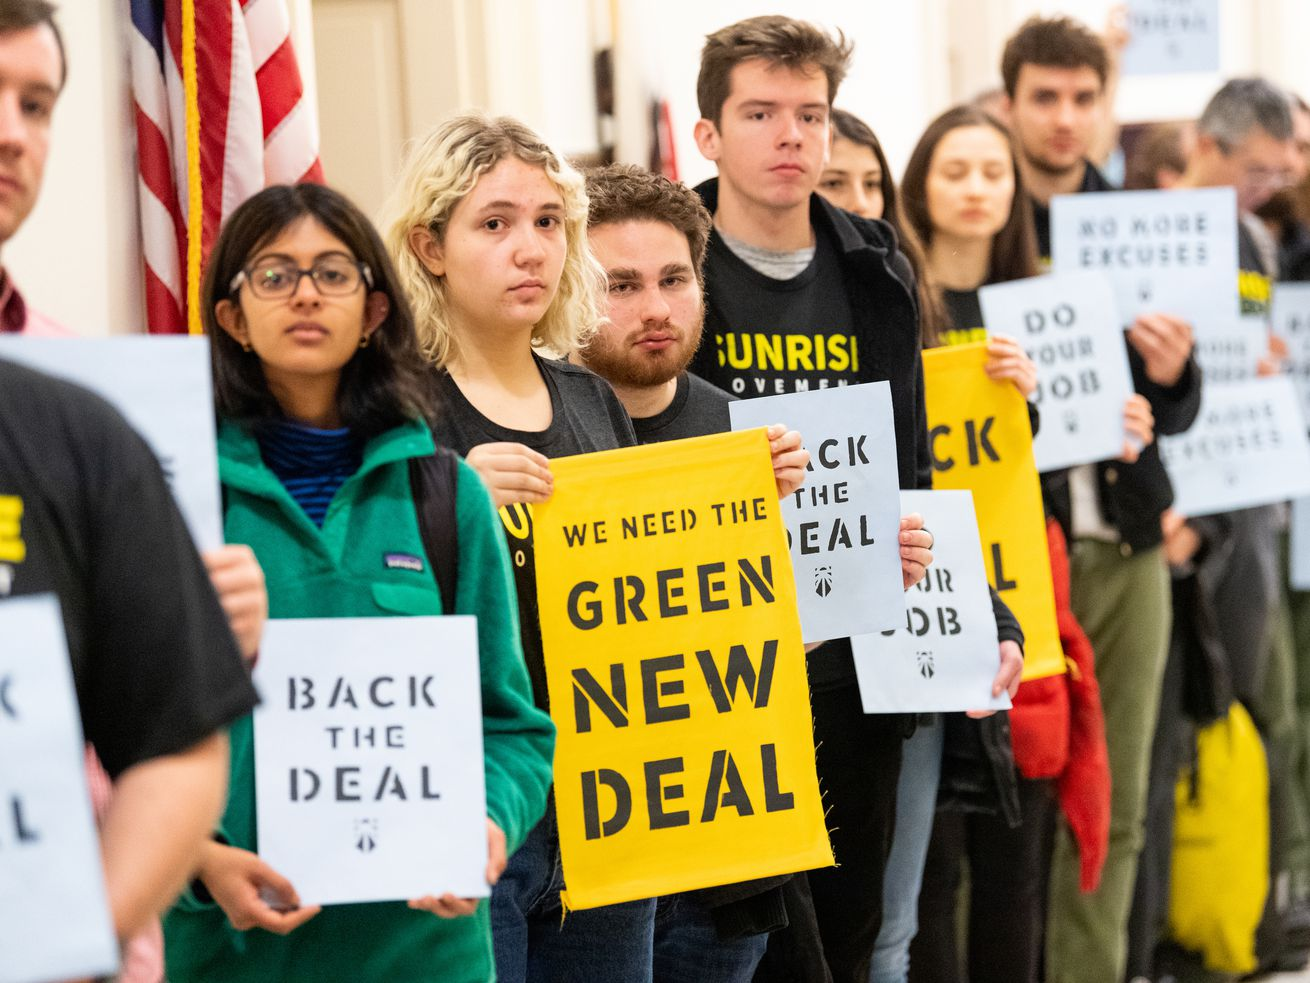 Growing support for a Green New Deal was a major development in climate change and energy policy in 2018.